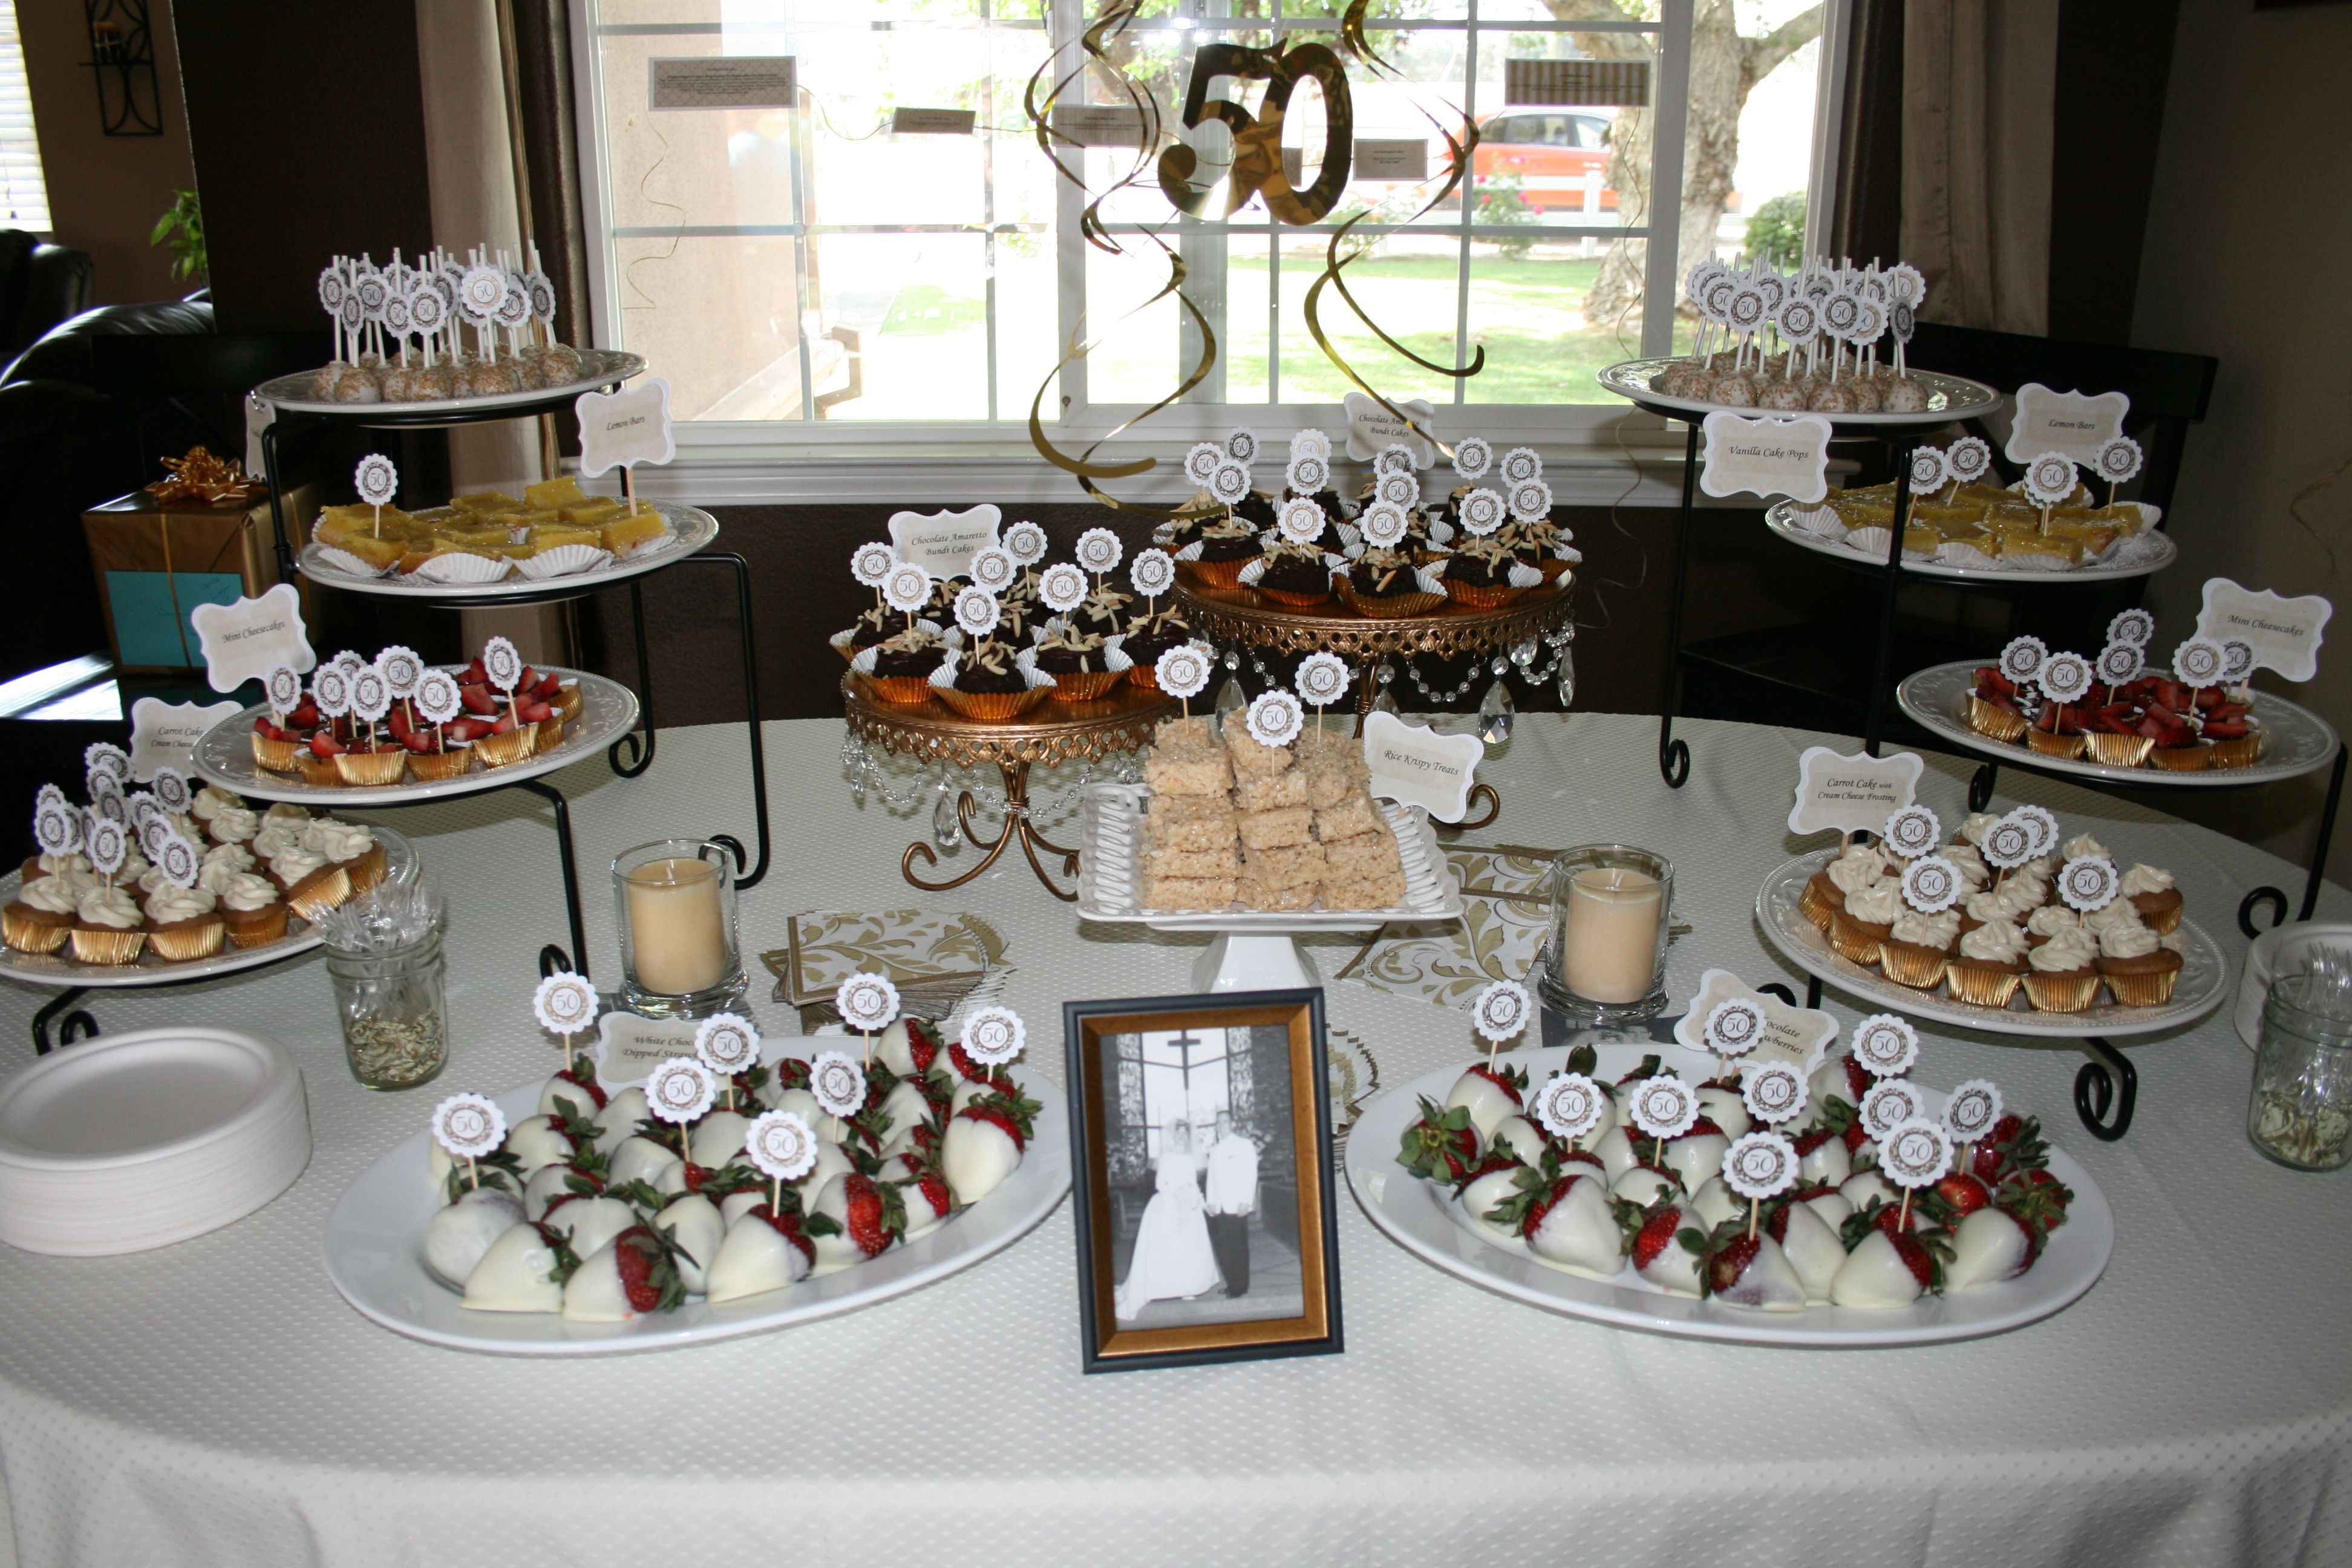 50th wedding anniversary dessert buffet one fine day events and